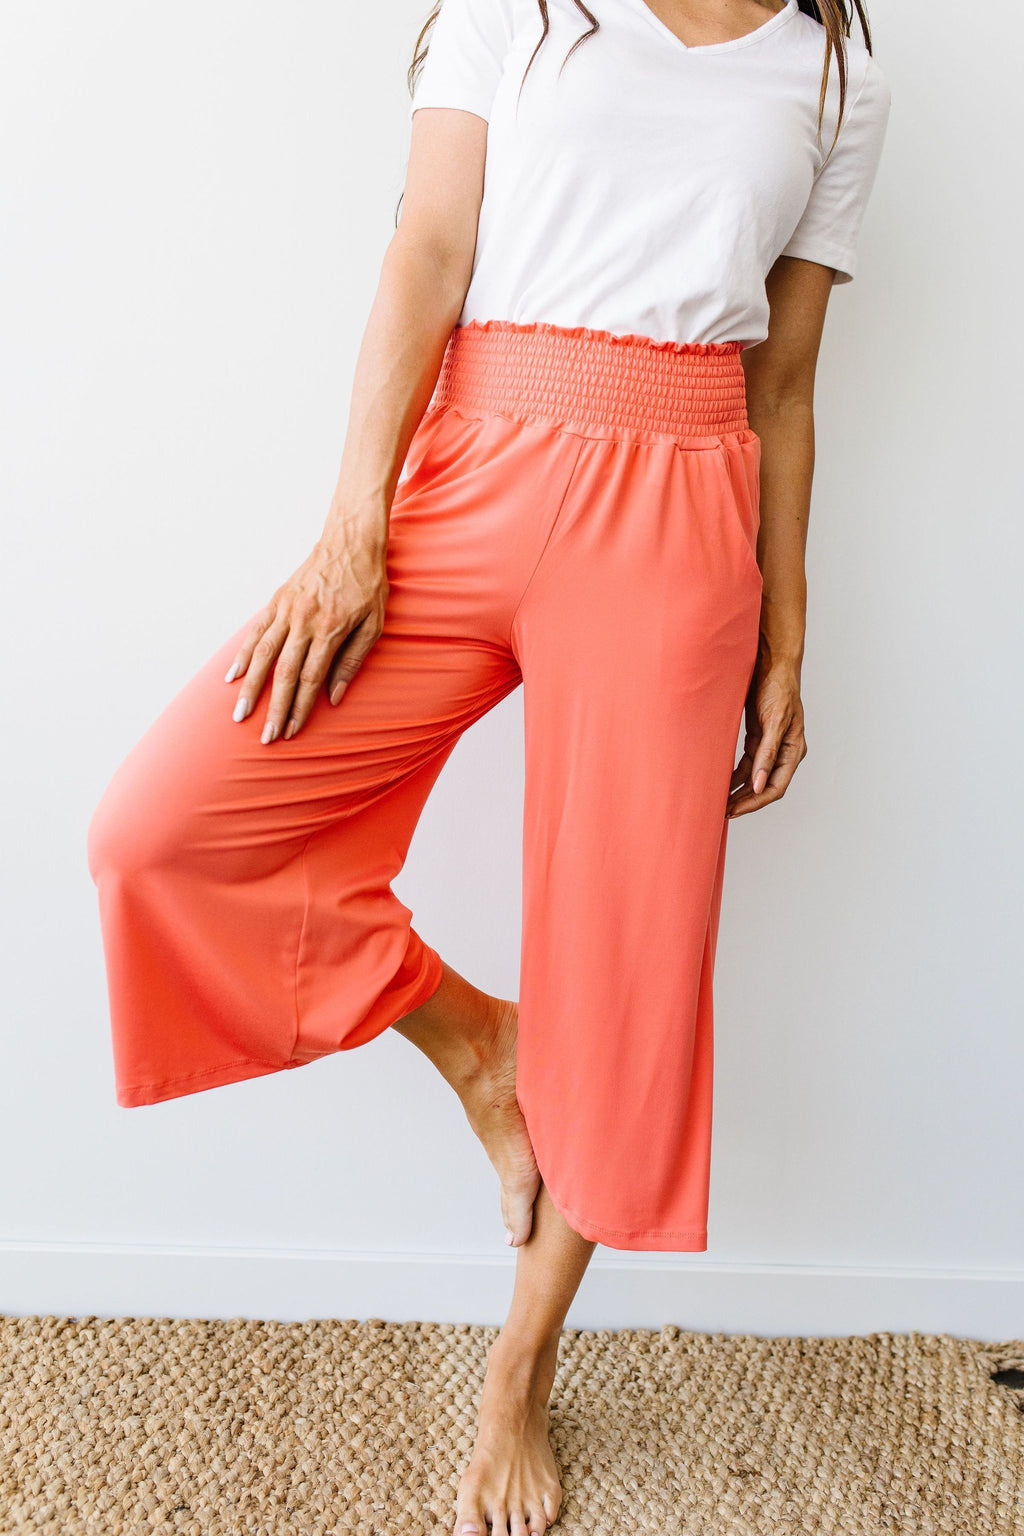 Go Get 'Em Gaucho Pants In Coral - Amaranth Collection